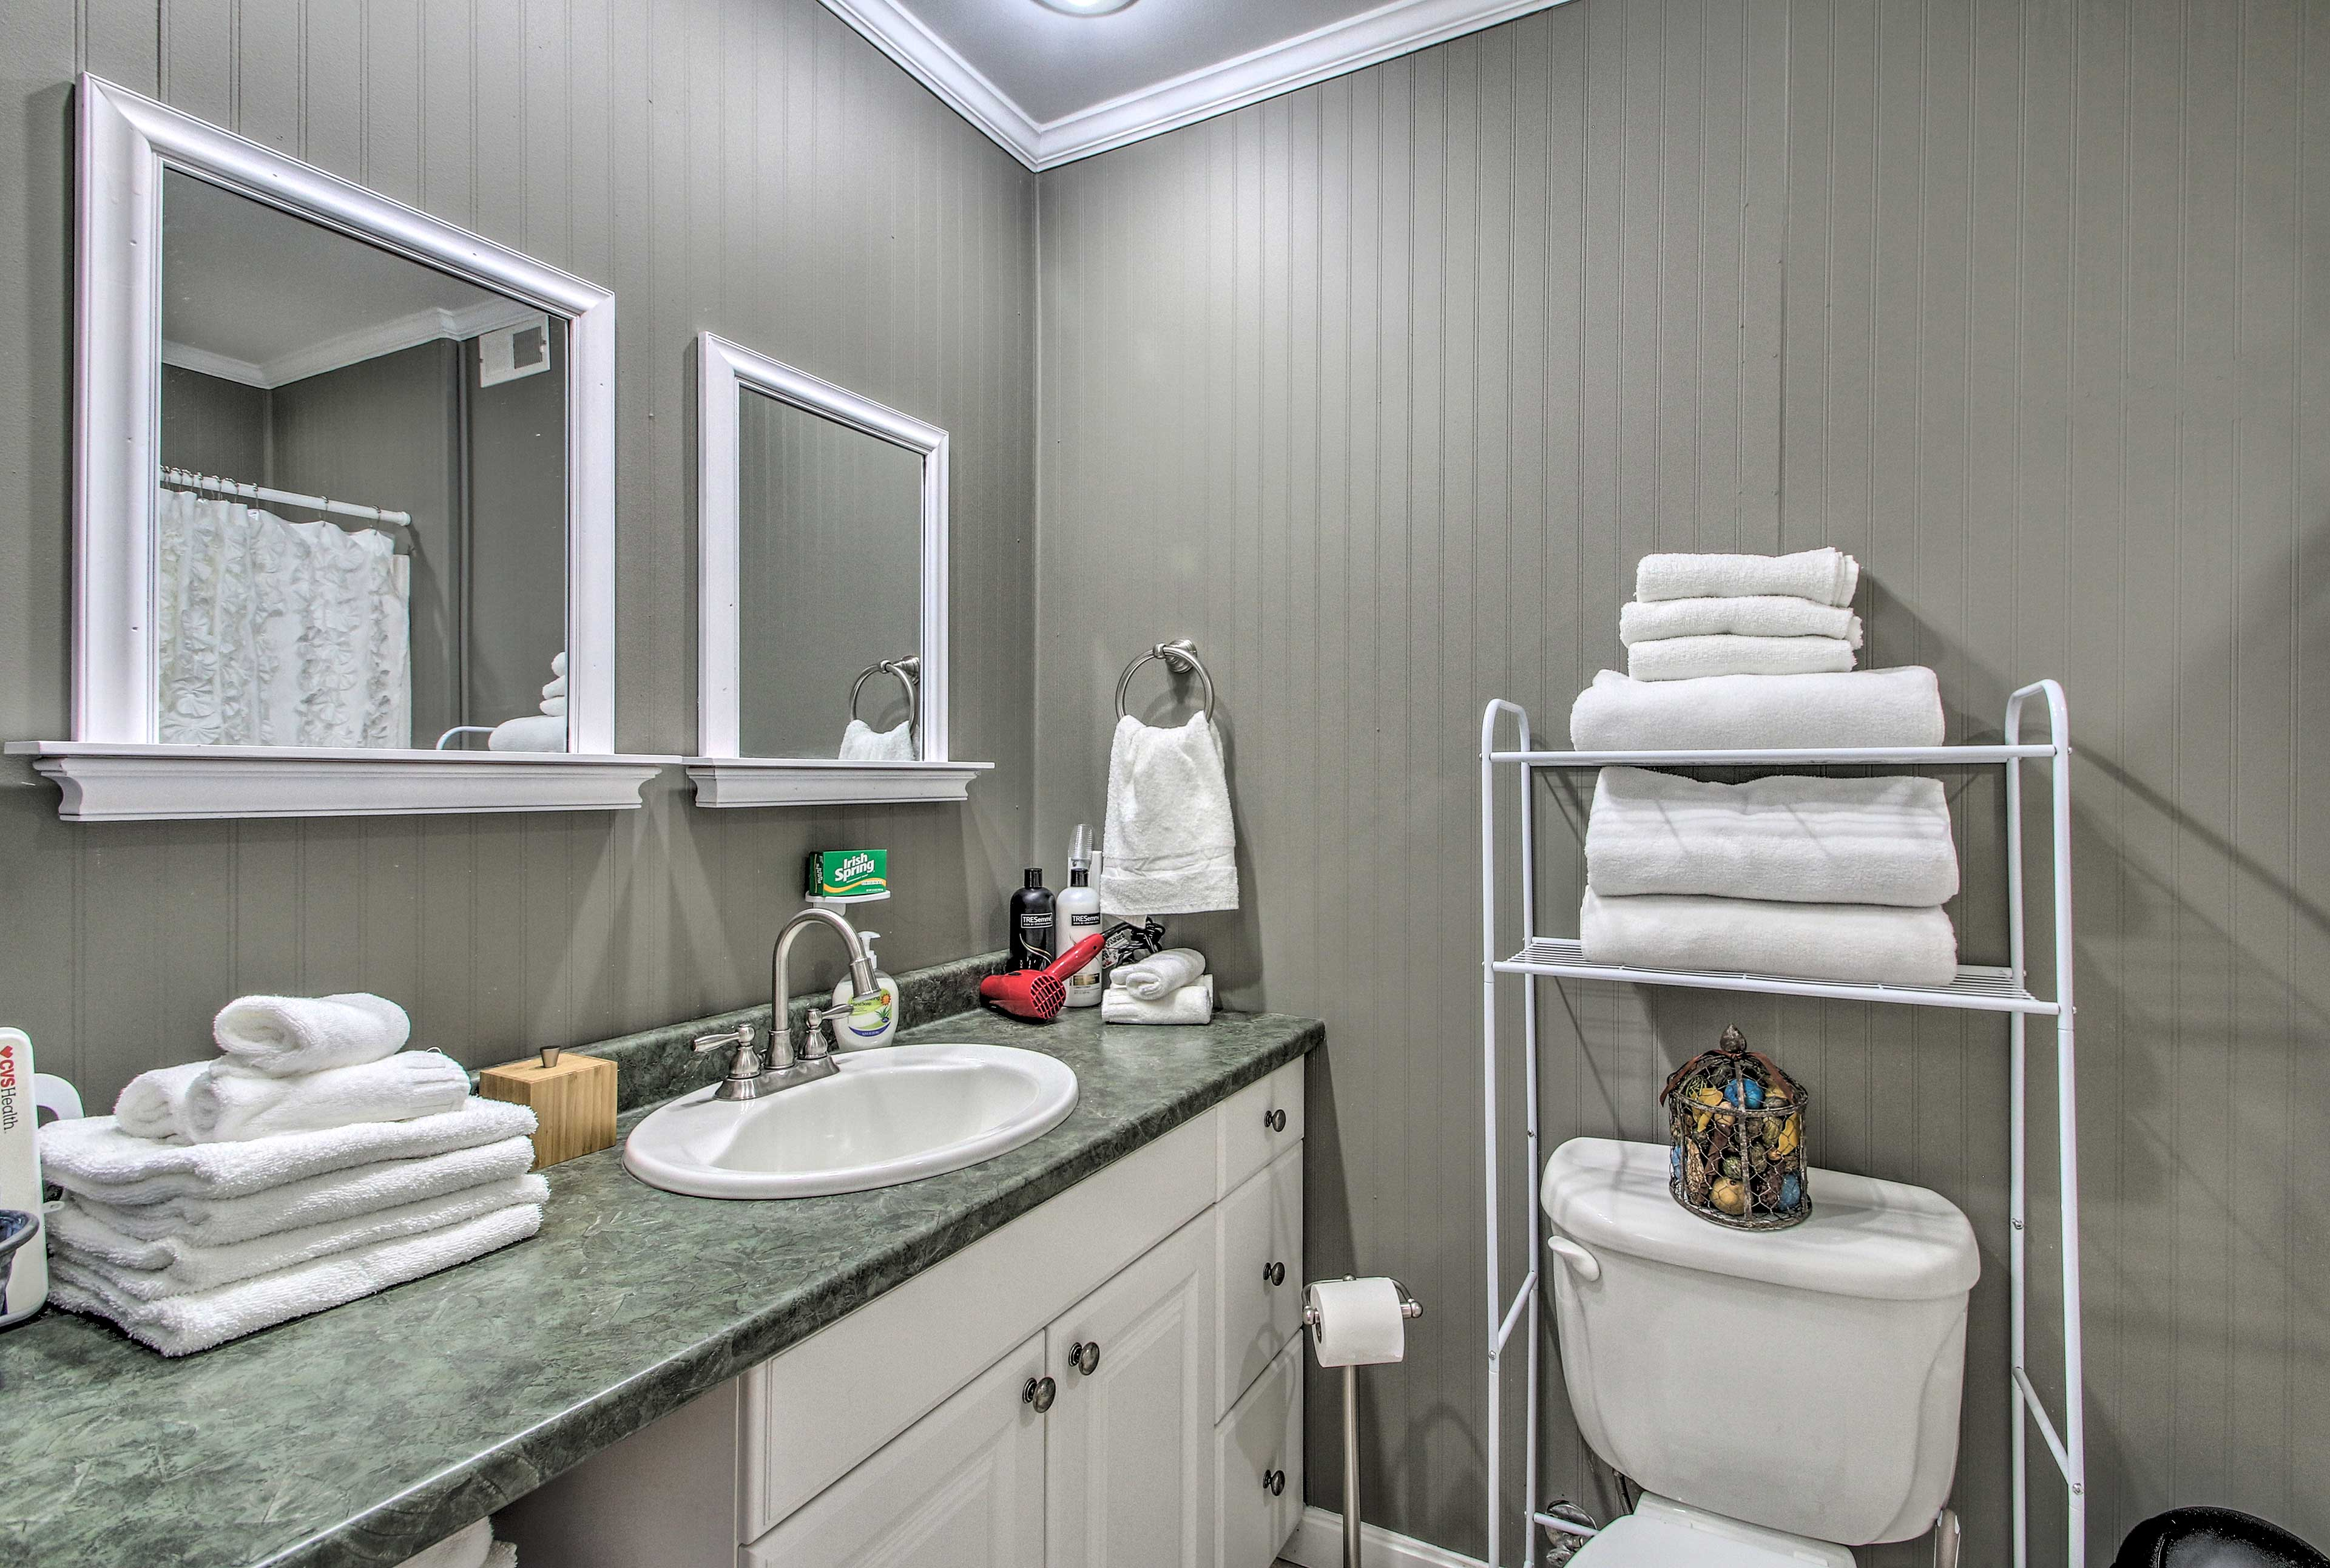 Store all your toiletries on the long vanity.